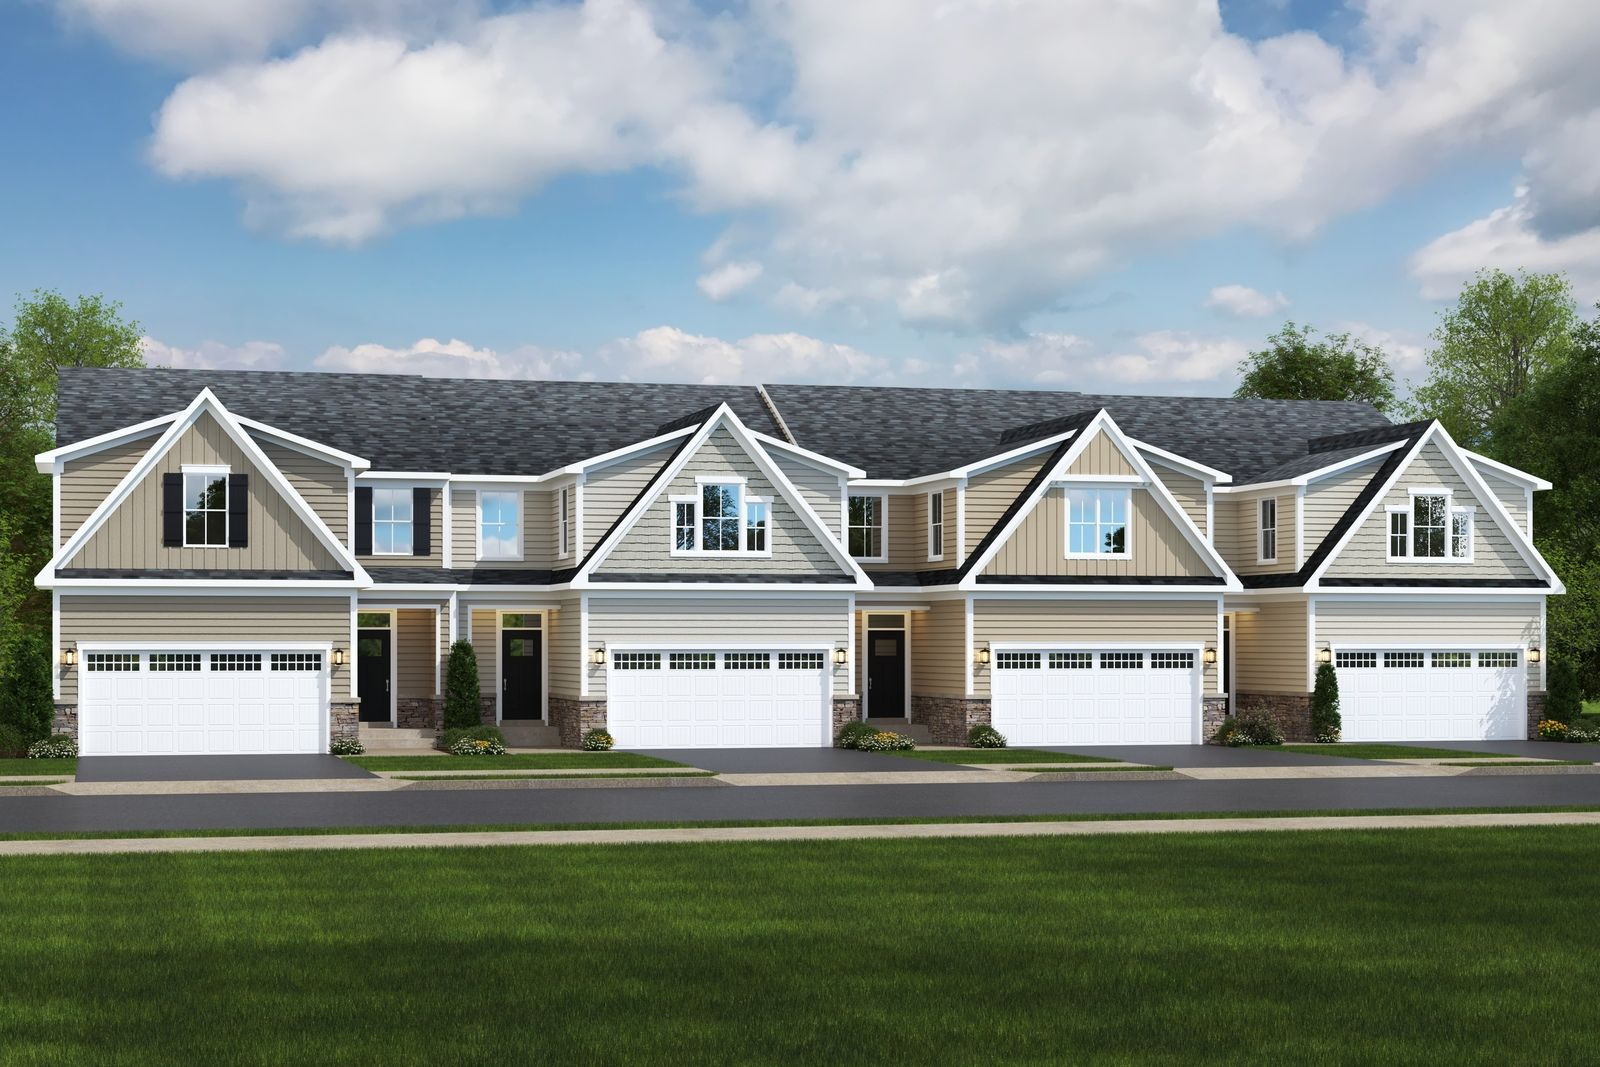 Welcome Home to Legion Heights:The lowest priced new homes in Downtown Canandaigua with low-maintenance and first-floor living. Walkable to North Main Street. From the mid $200s.Click here to join the VIP List.